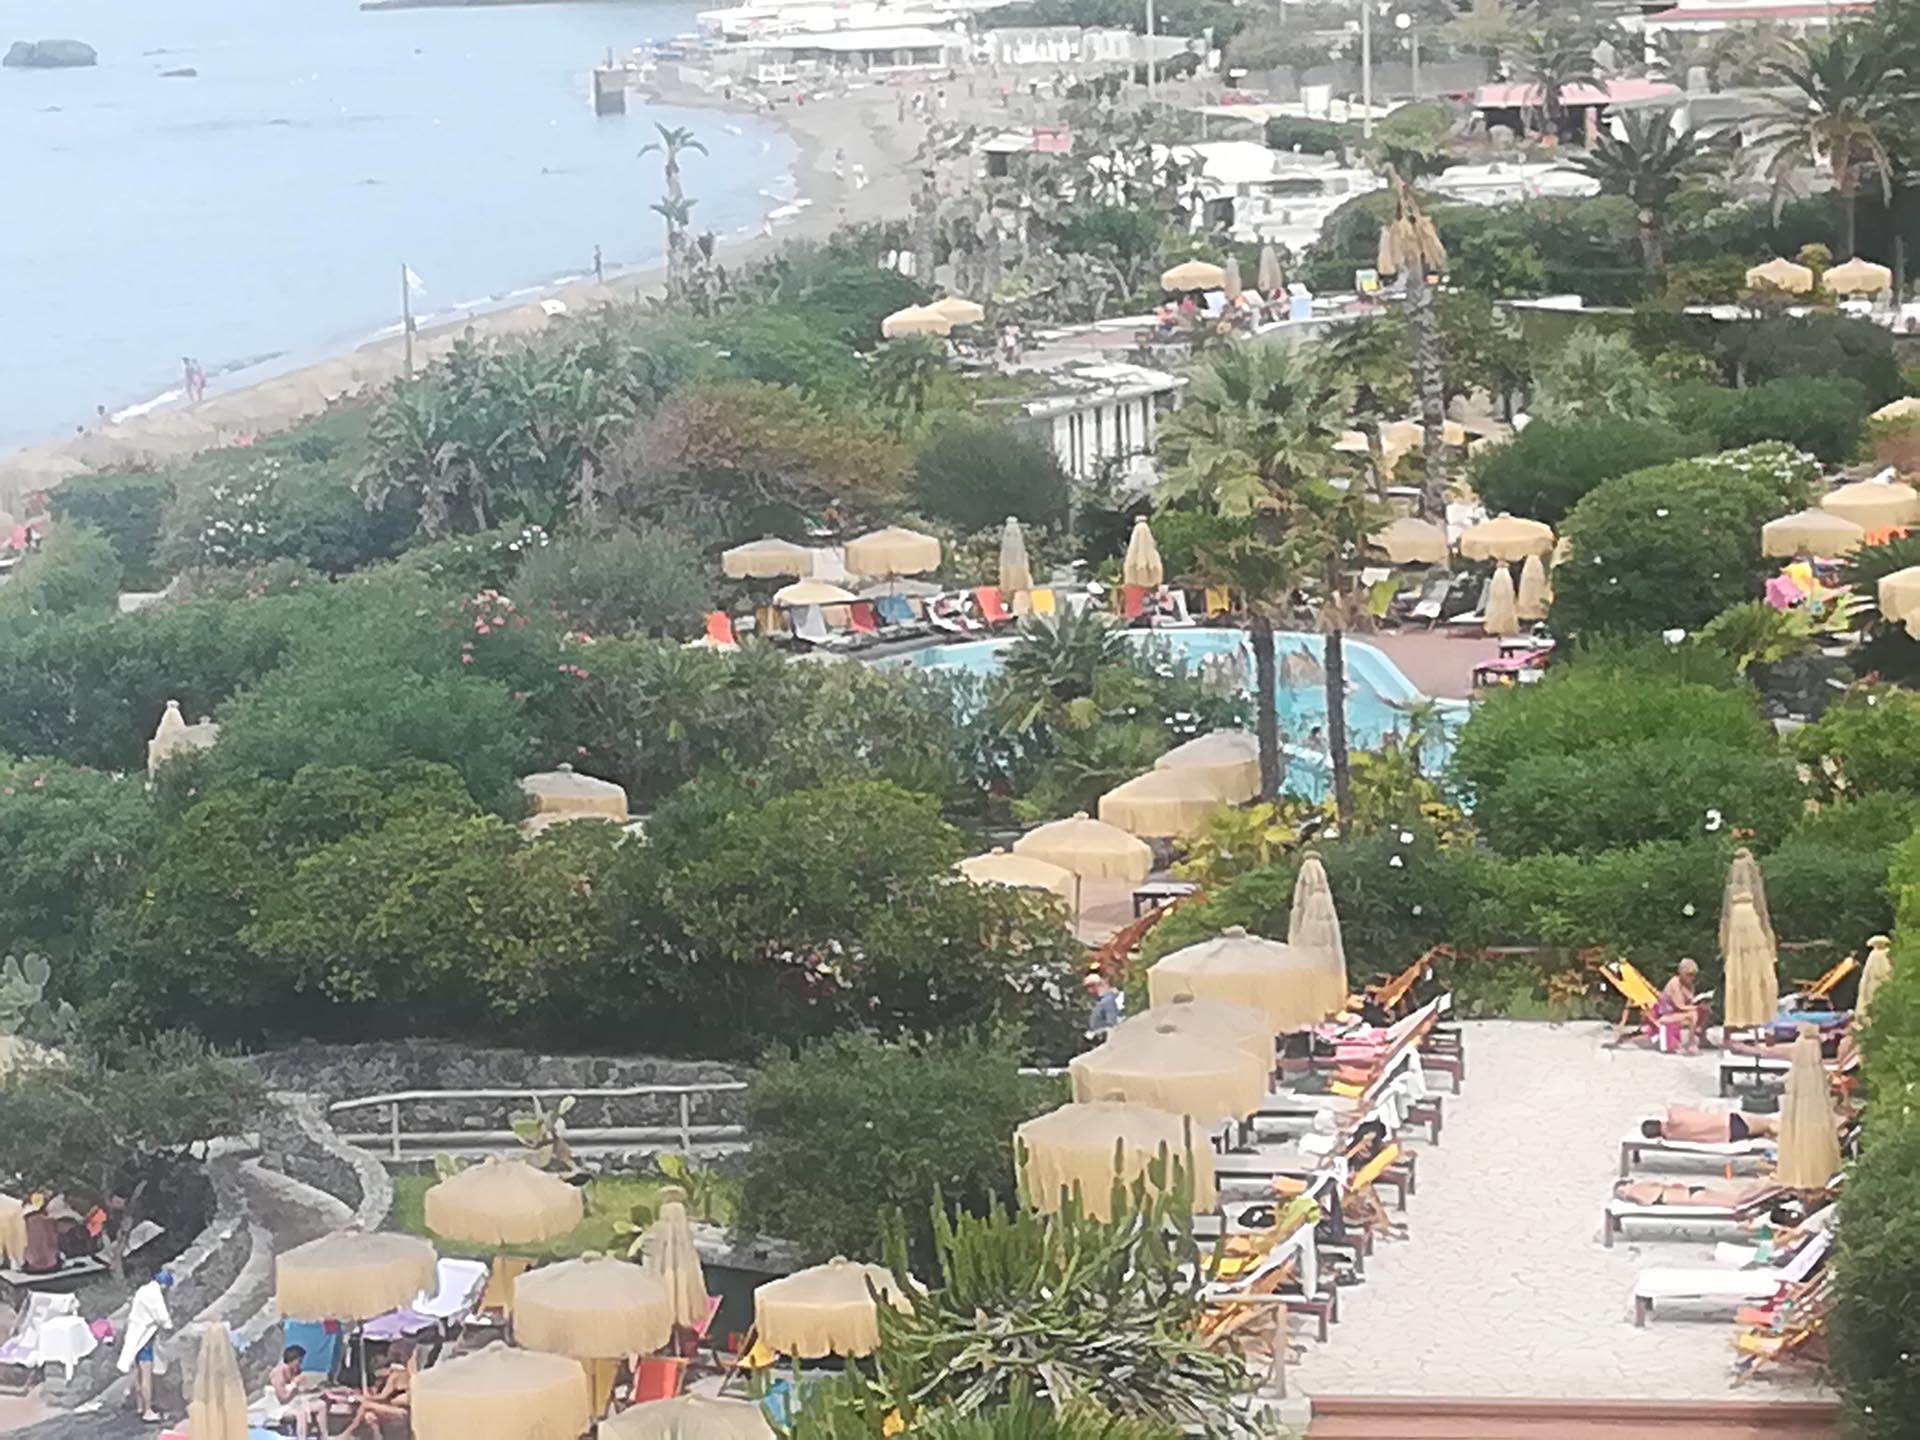 Some of the terraces and pools at Poseidon